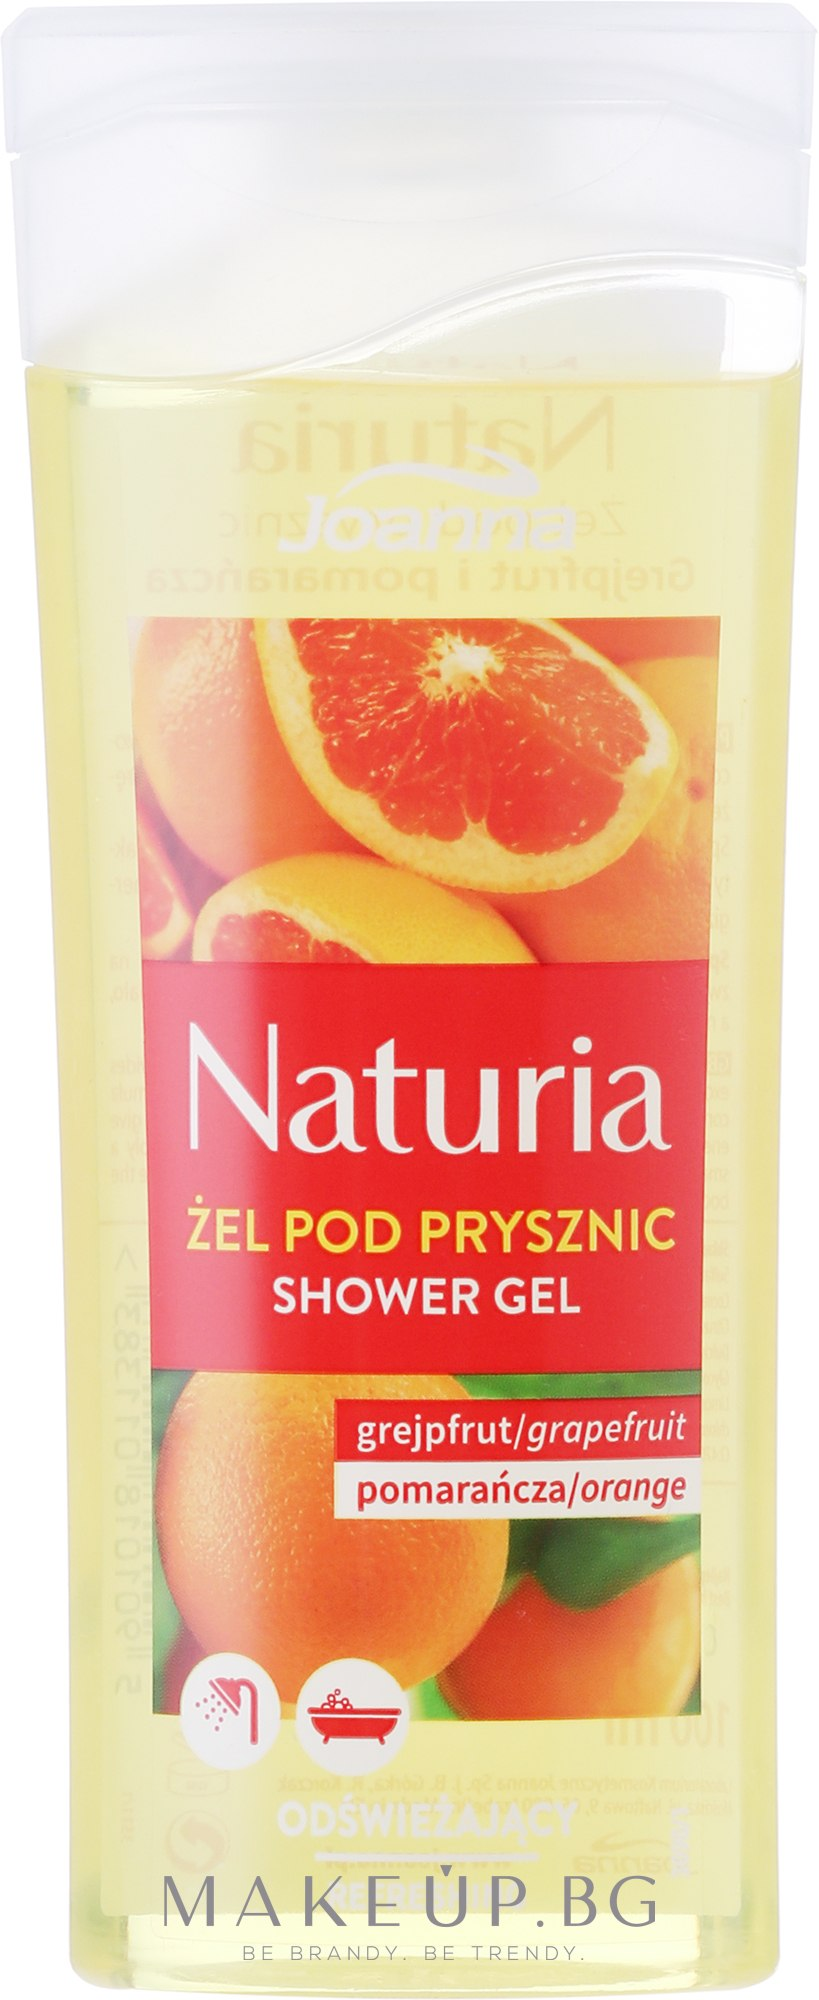 "Душ гел ""Грейпфрут и портокал"" - Joanna Naturia Grapefruit and Orange Shower Gel — снимка 100 ml"